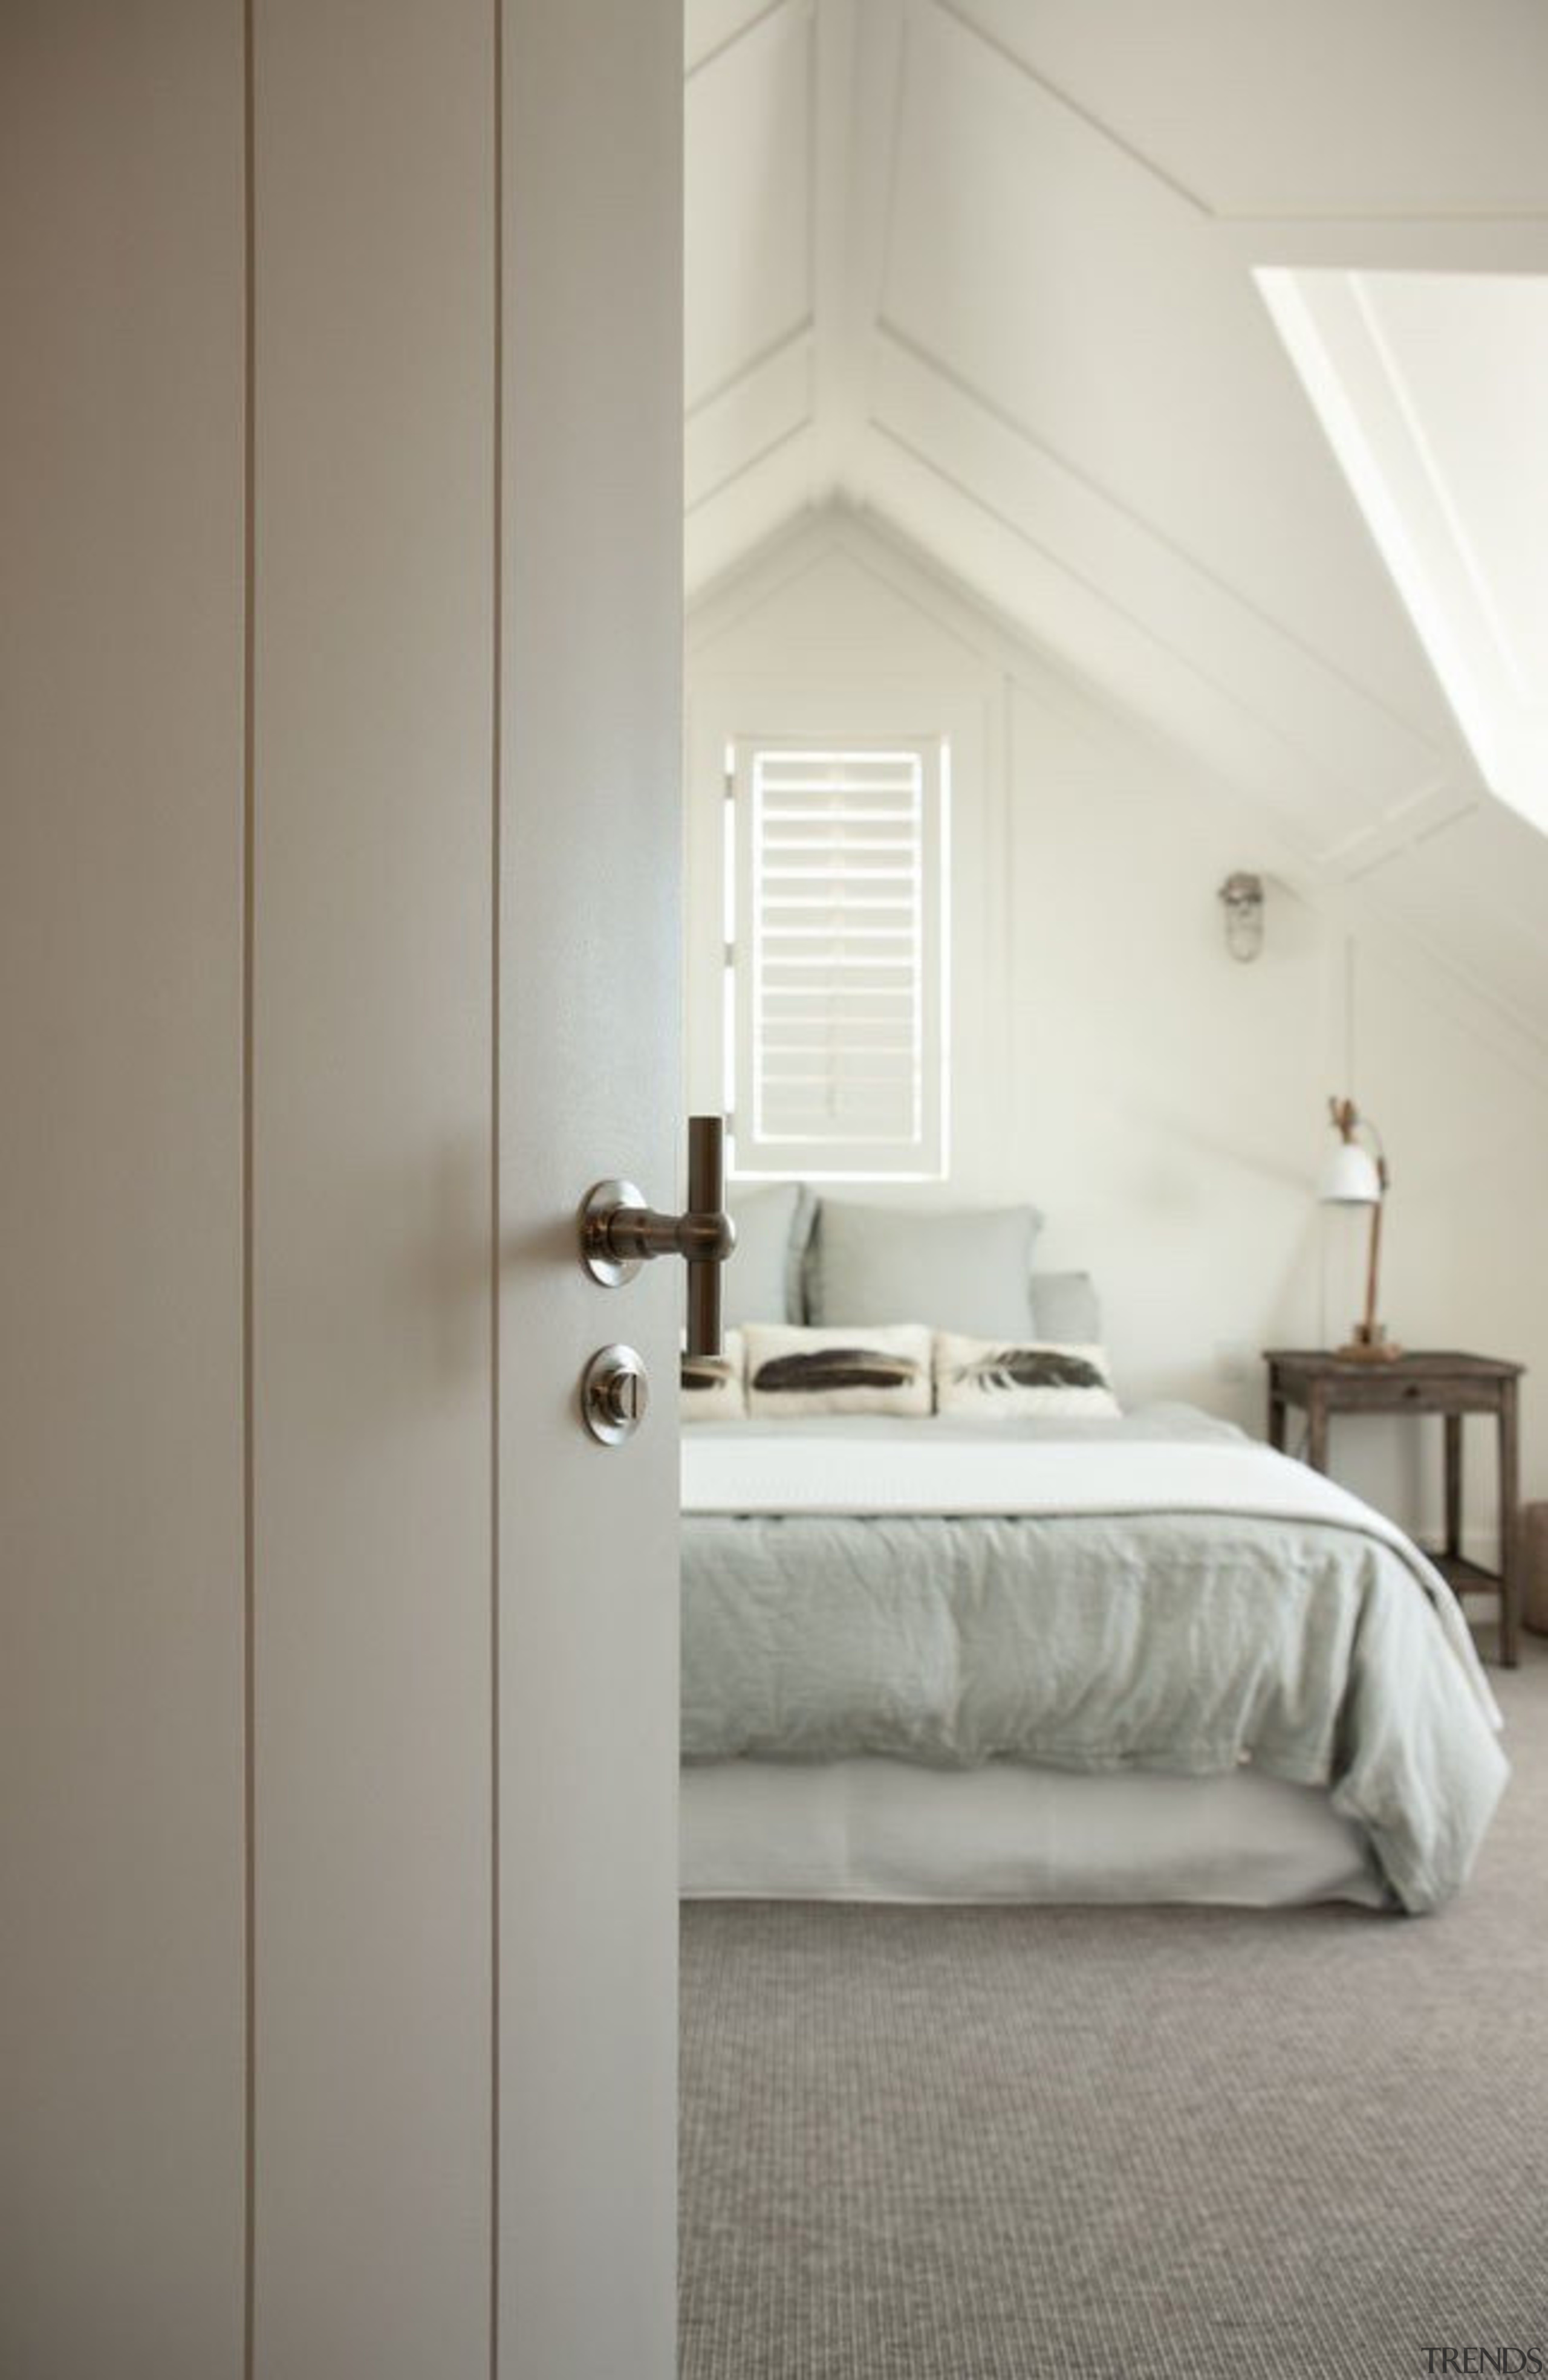 Formani Ferrovia exclusive to www.sopersmac.co.nz - Formani Ferrovia architecture, bed frame, bedroom, daylighting, floor, furniture, home, interior design, room, wall, window, wood, gray, white